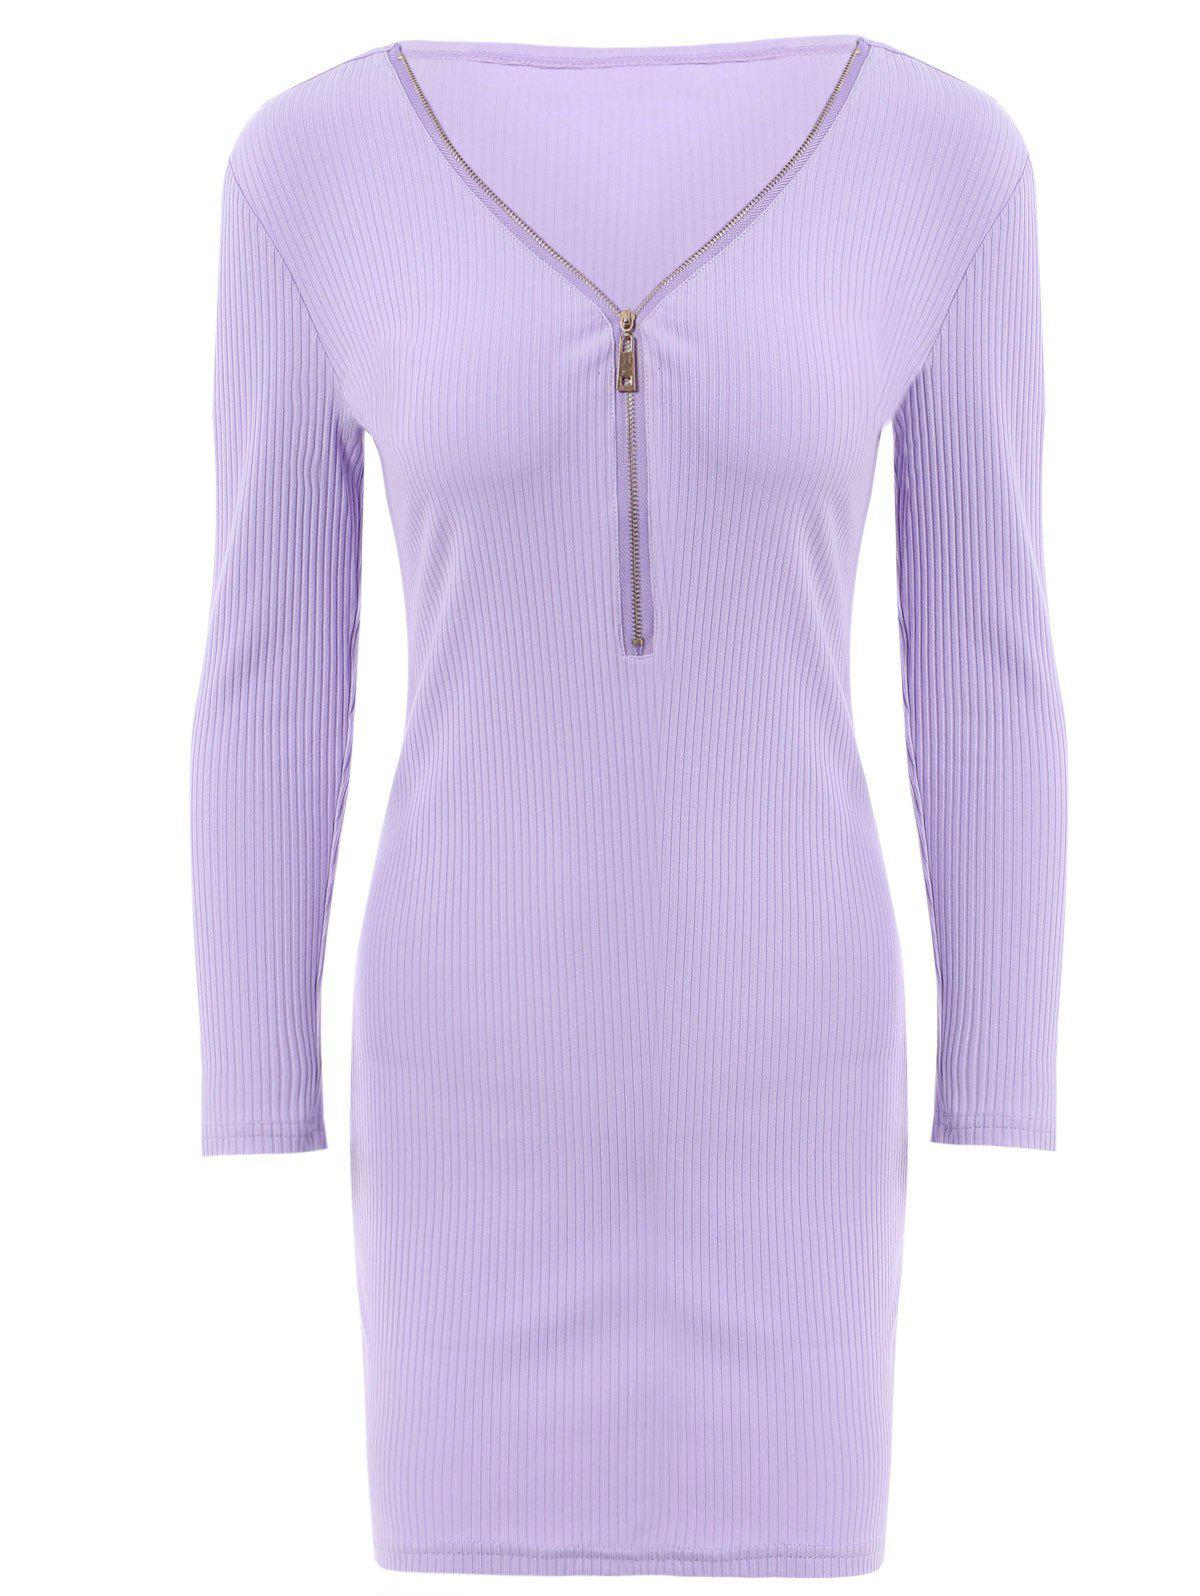 Alluring Women's V-Neck Candy Color Long Sleeve Dress - PURPLE S